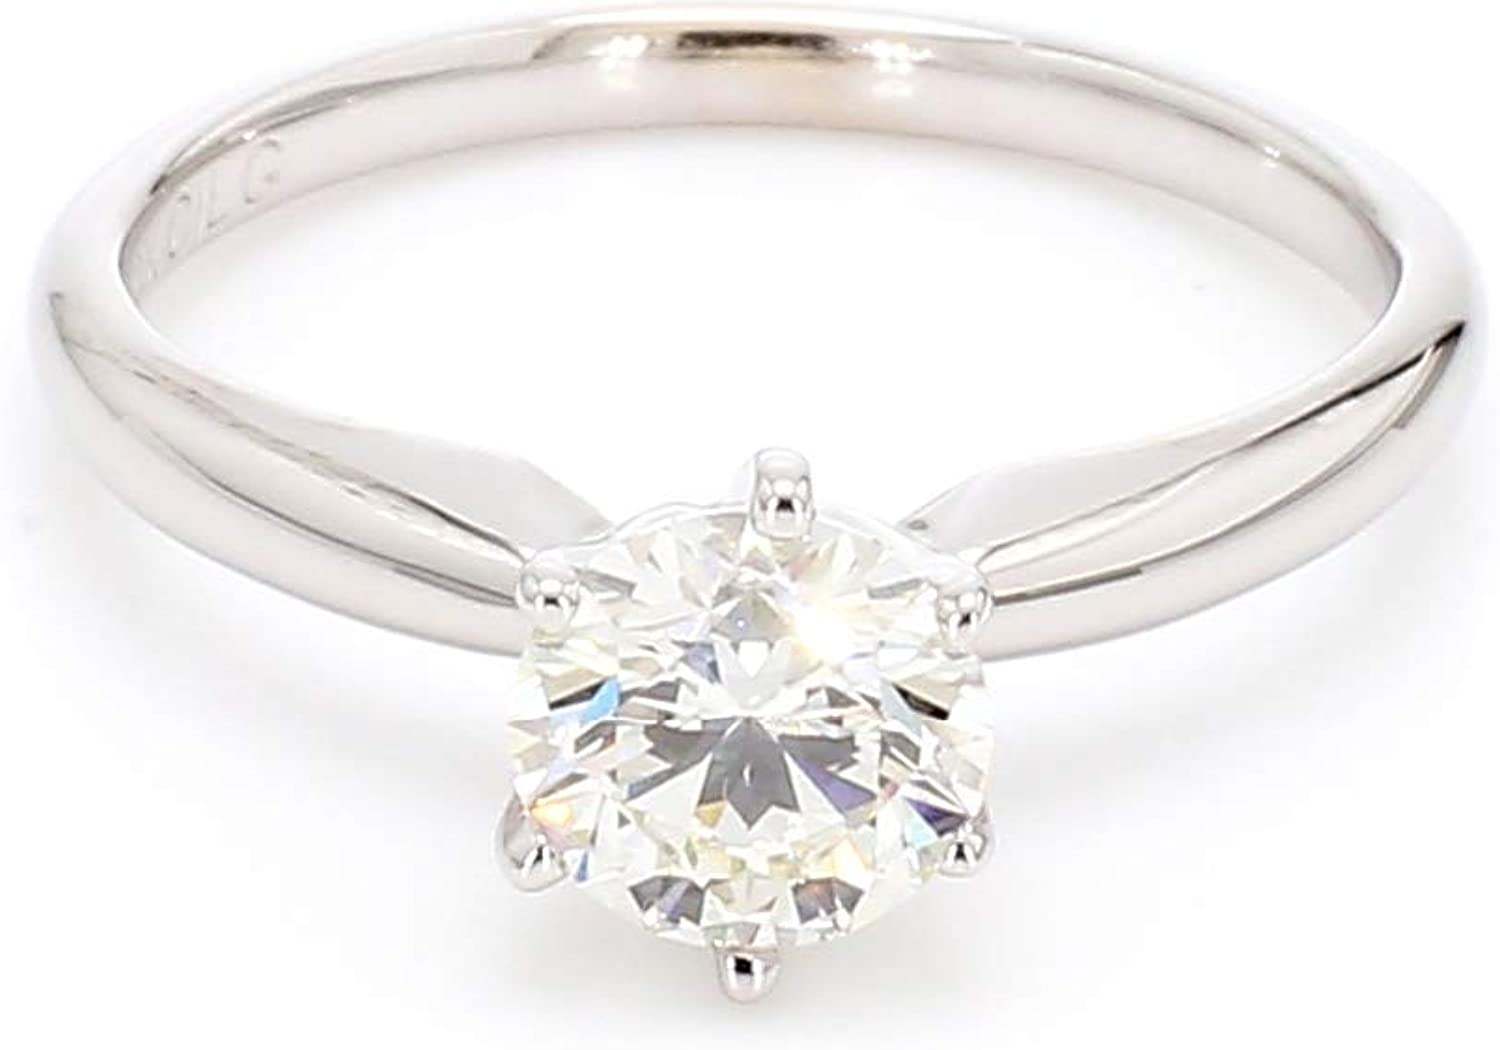 14k White Gold Lab-Grown Diamond Solitaire Wedding Engagement Ring (1/2 cttw, I-J Color, VS2-SI1 Clarity)